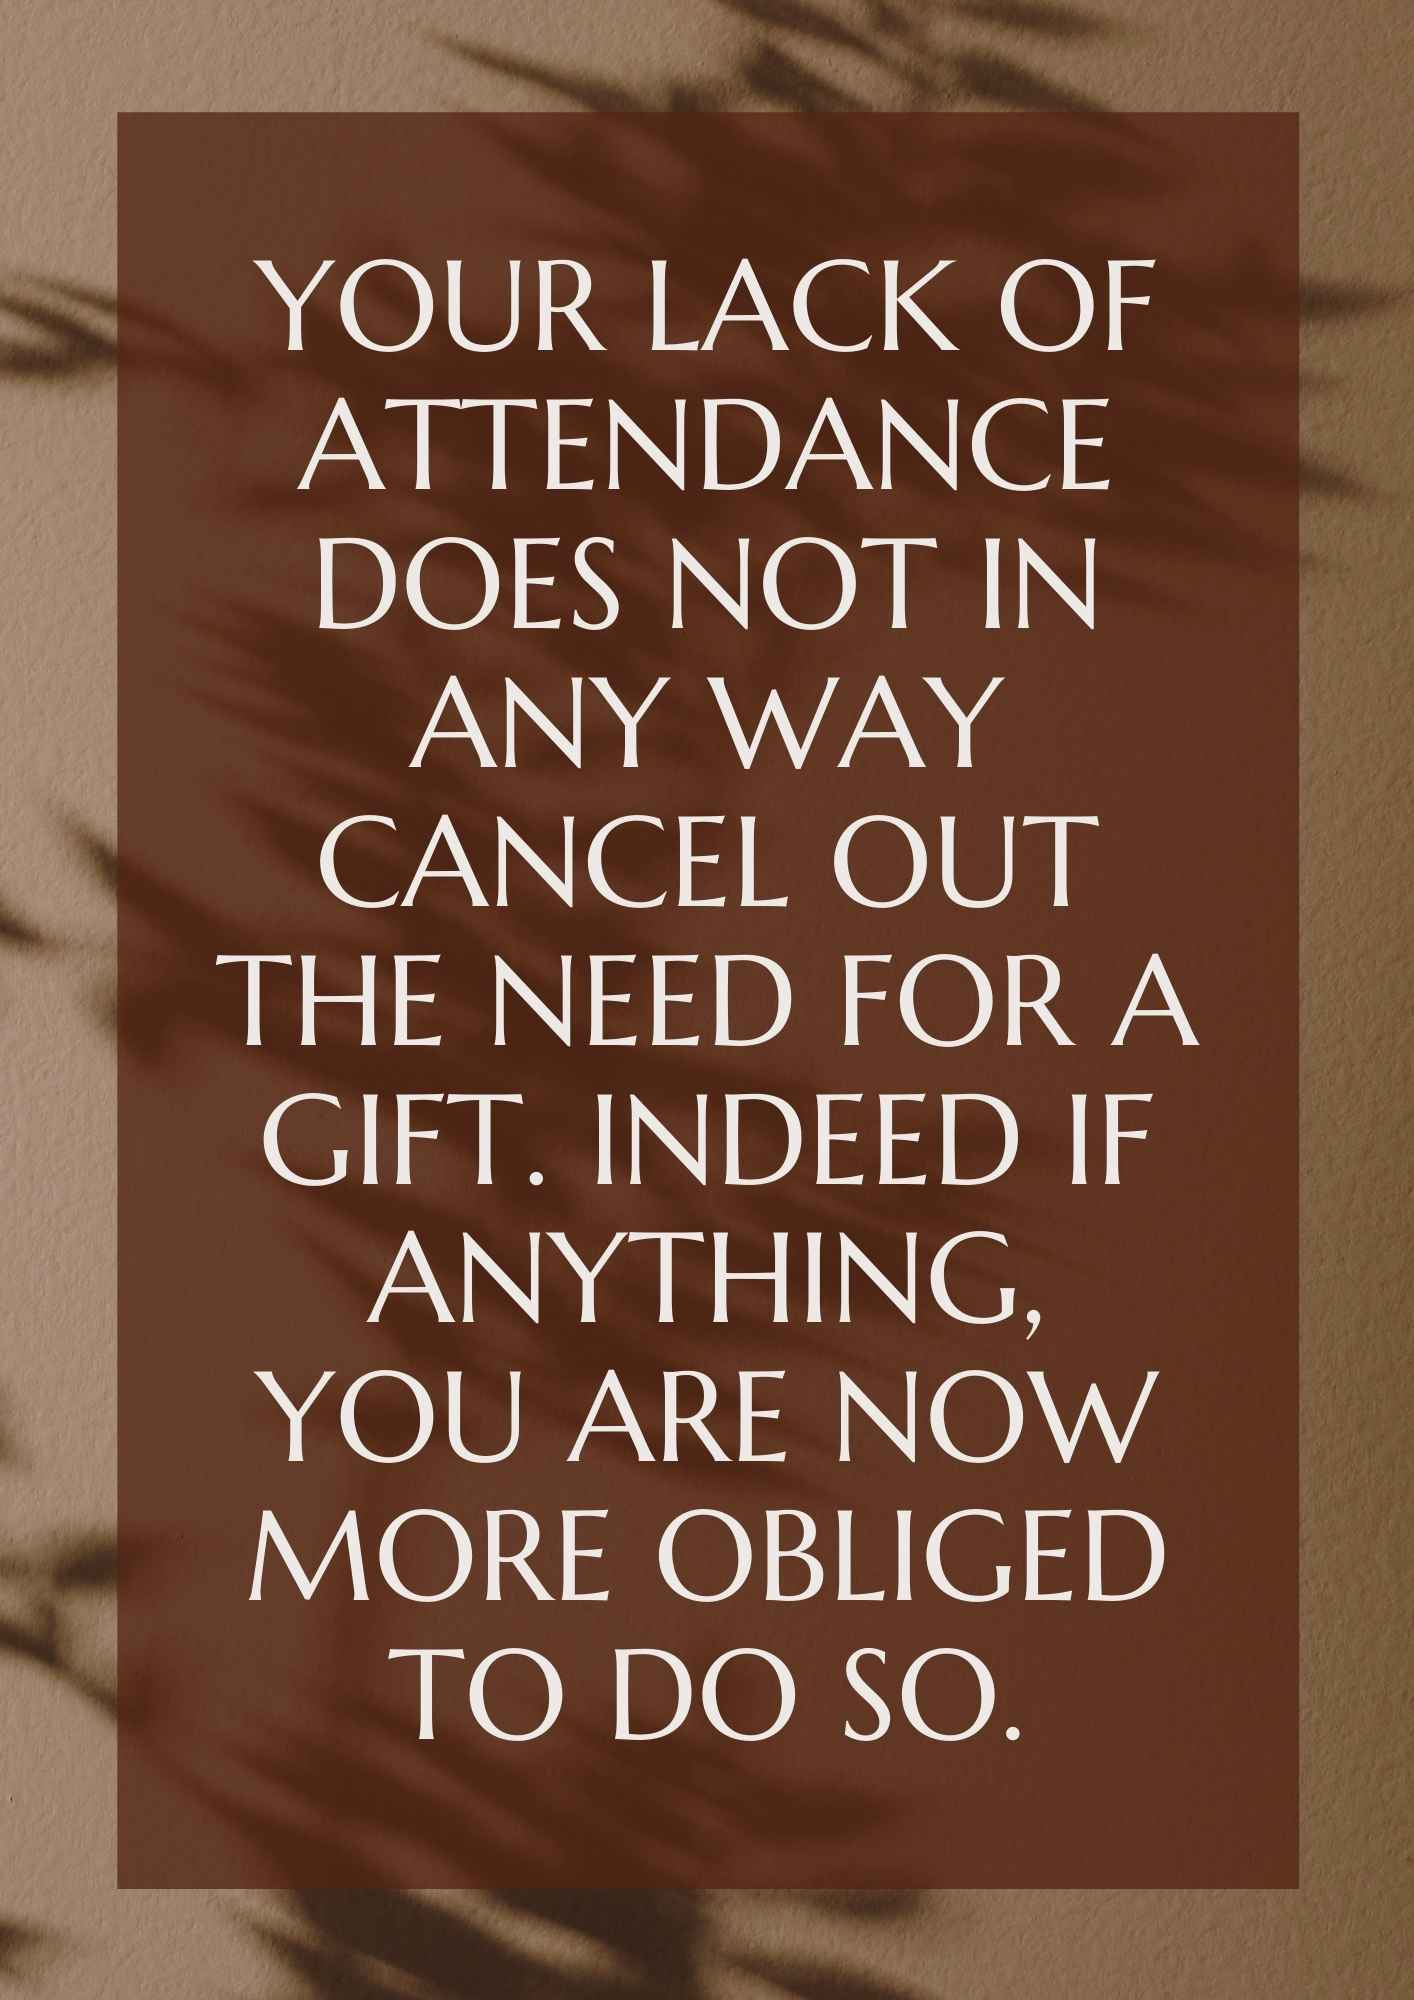 Your lack of attendance does not in any way cancel out the need for a gift. Indeed if anything, you are now more obliged to do so.